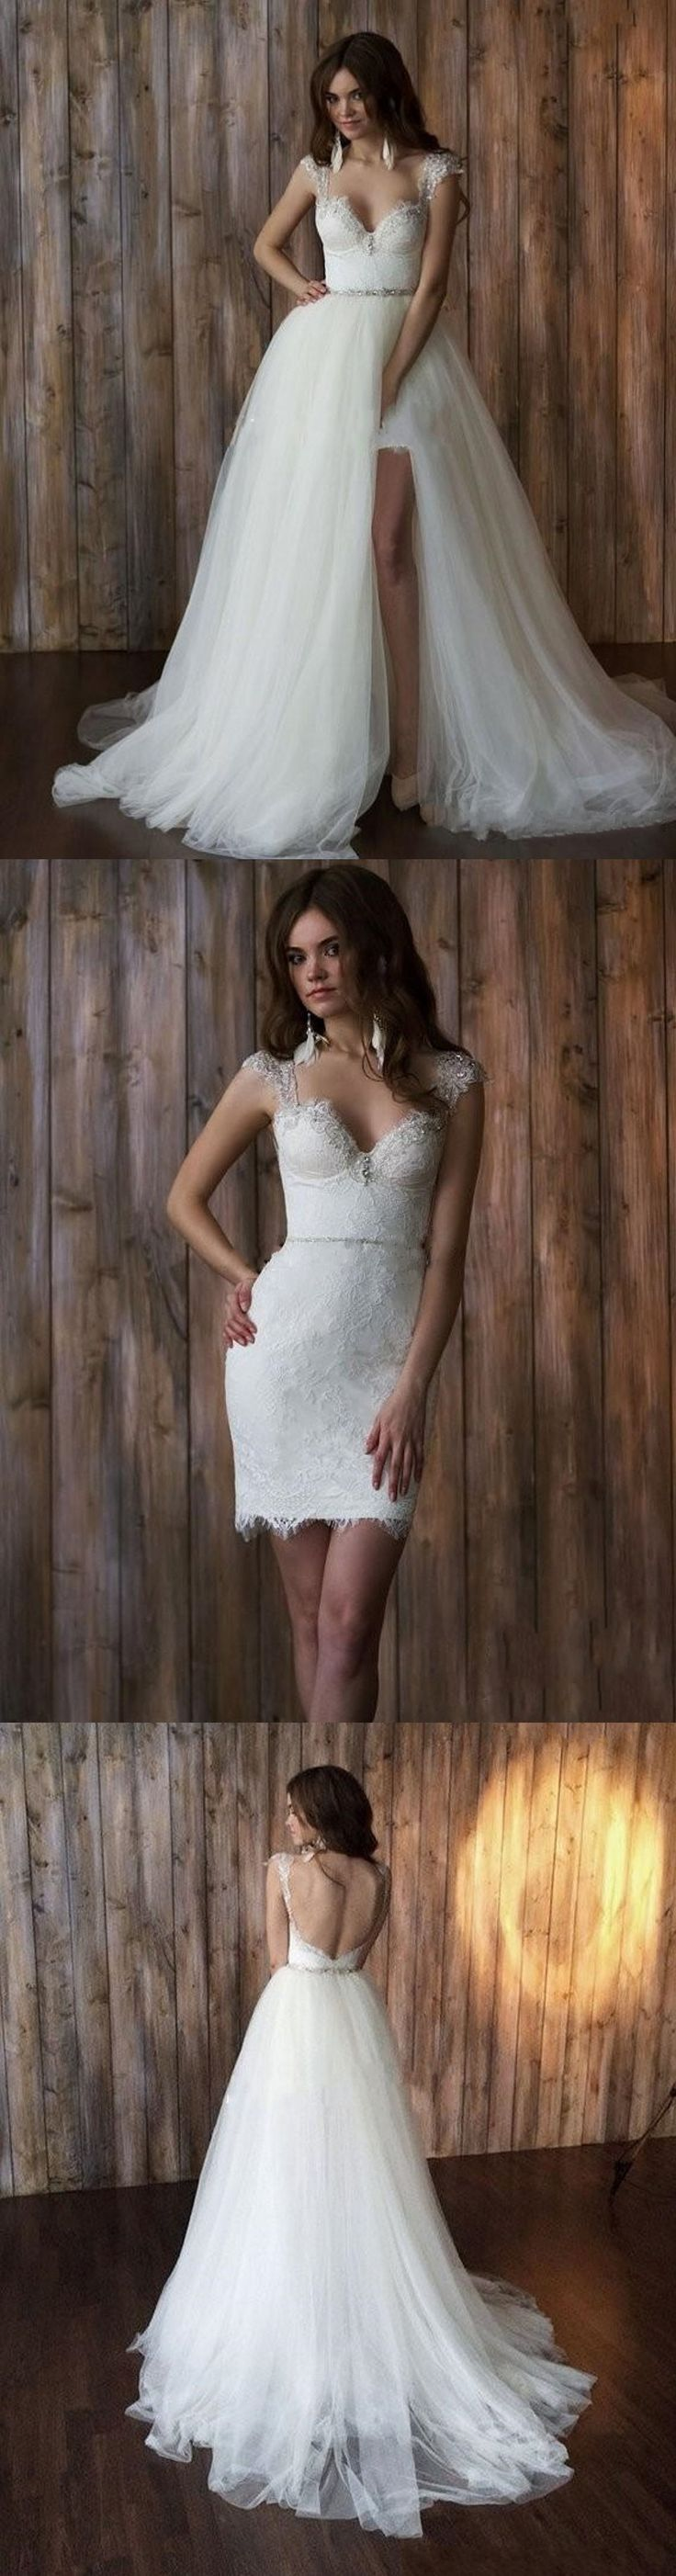 Bridal Gowns Sexy Lace Detachable Skirt  Wedding Dress Short In Front And Long In Back Vintage High Low Wedding Dresses 2016